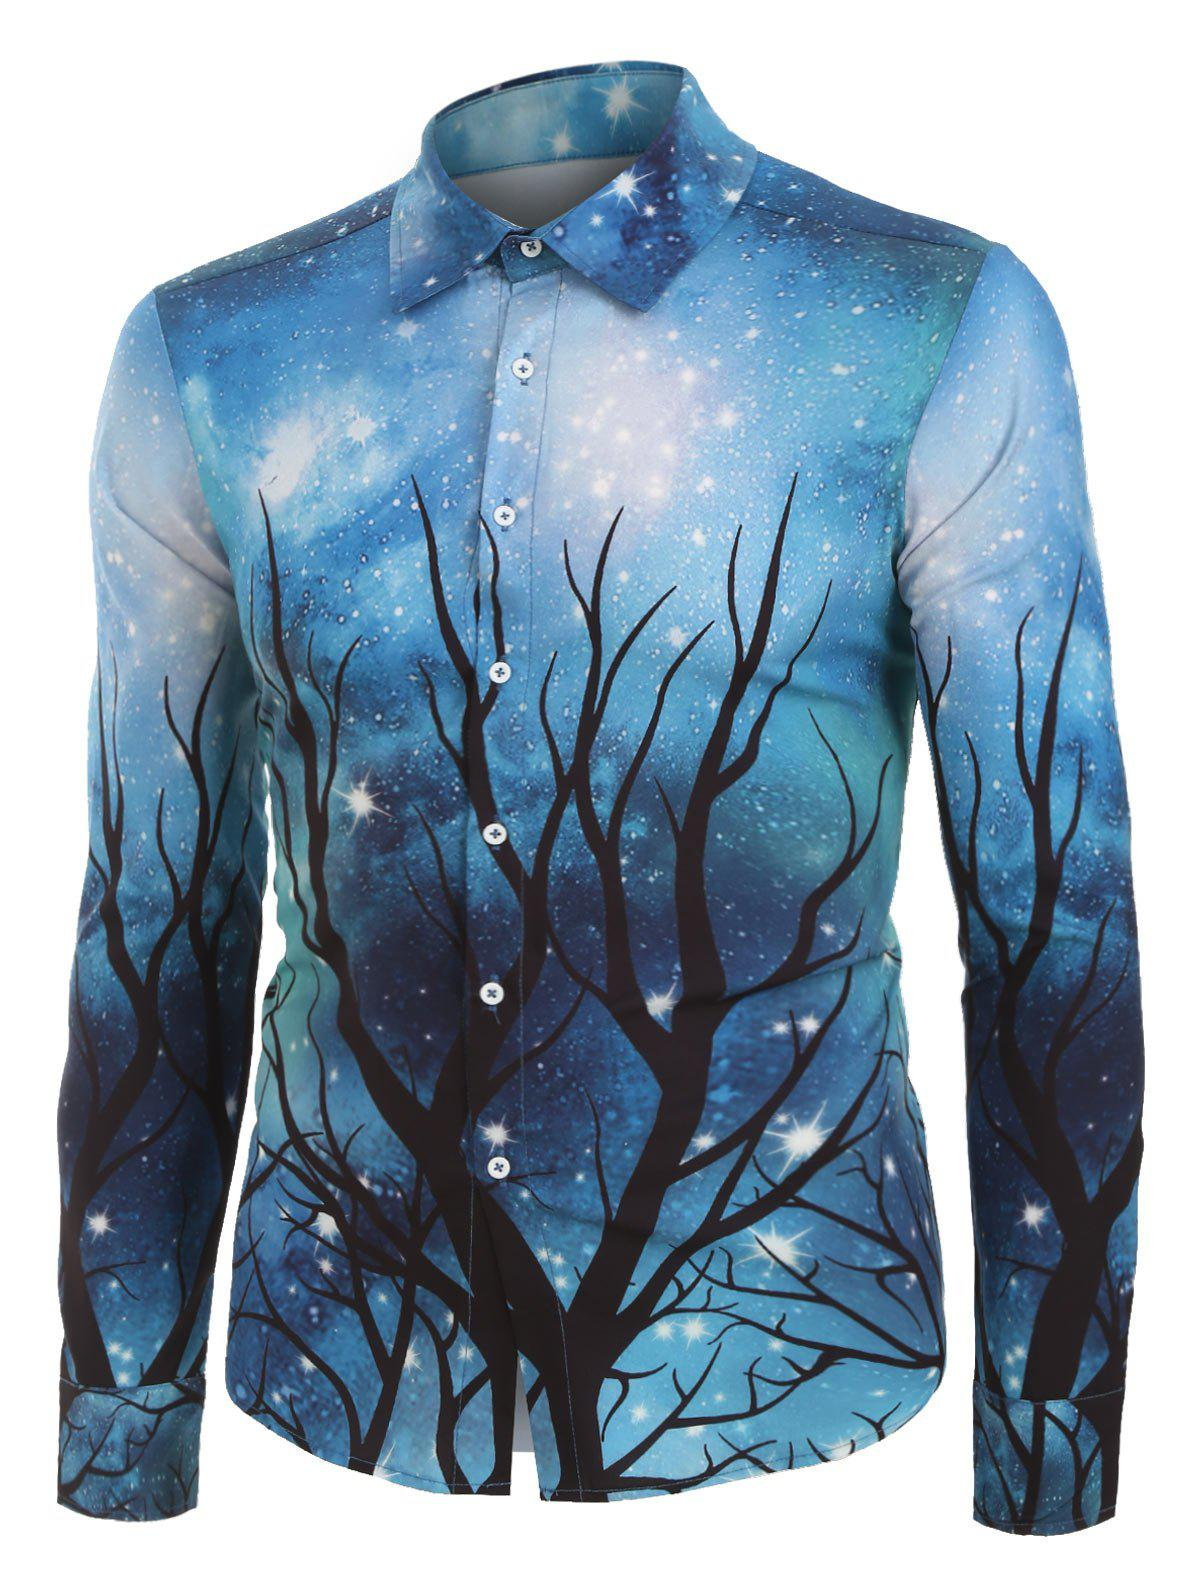 Buy Galaxy and Tree Print Button Up Long Sleeve Shirt